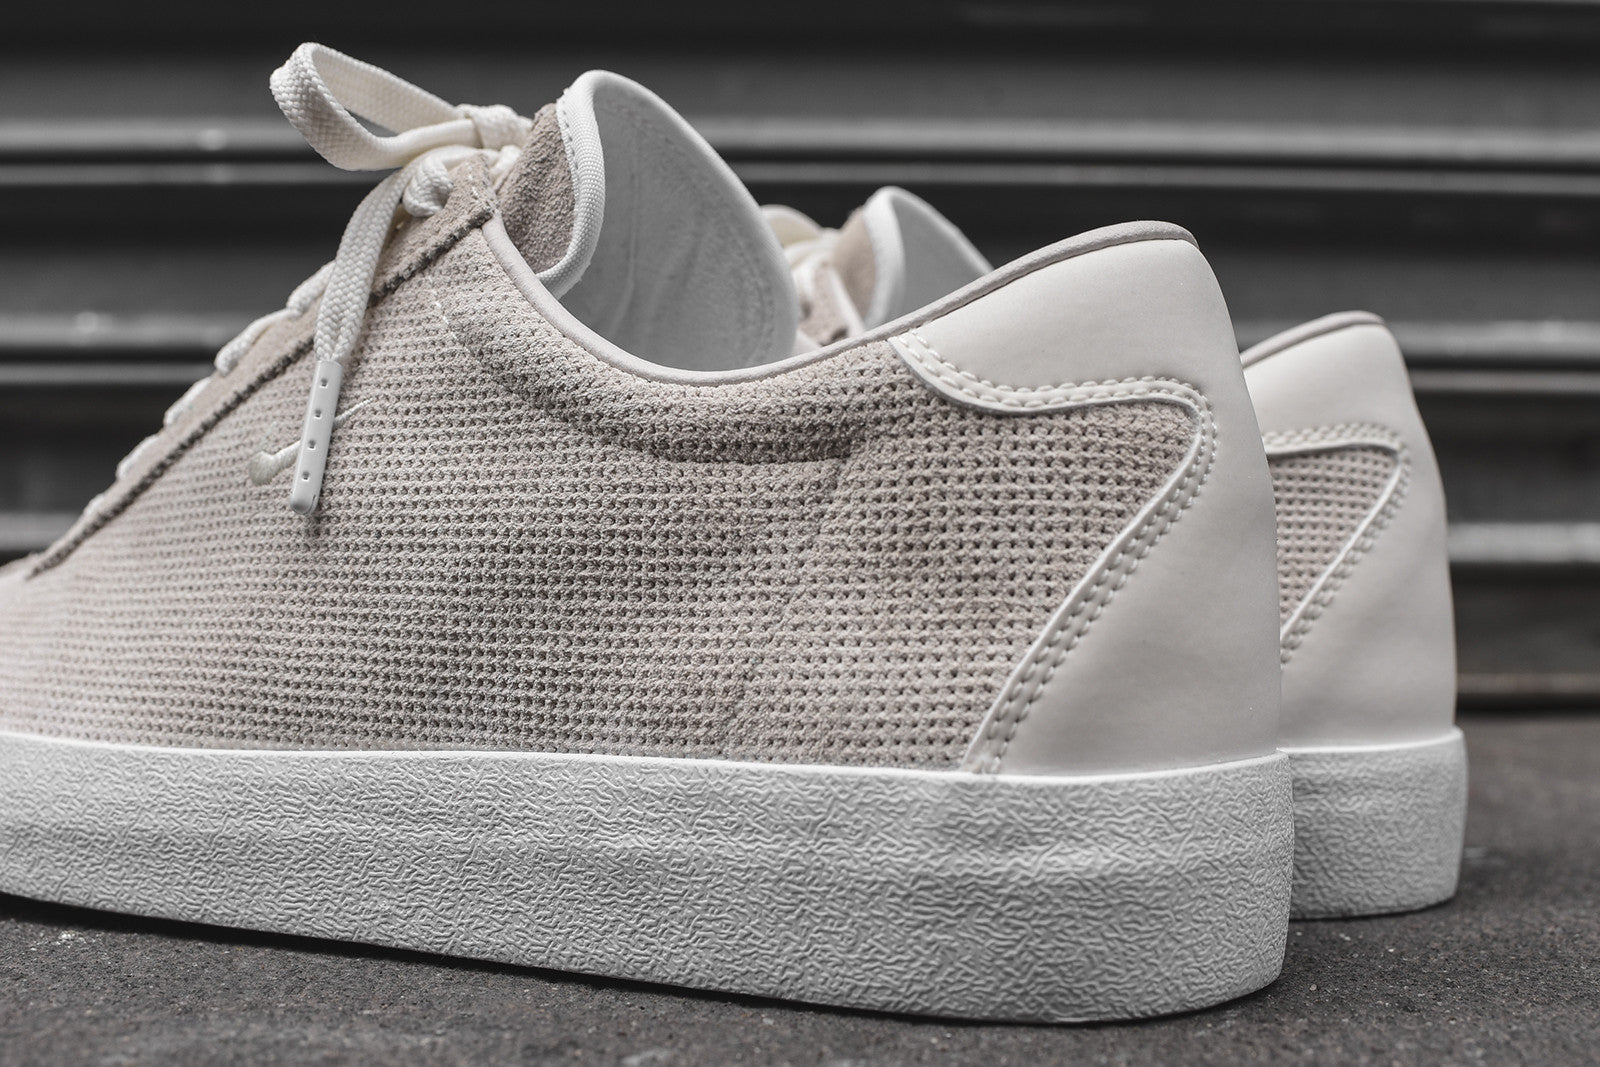 Nikelab match classic sail kith nyc for Progressive house classics